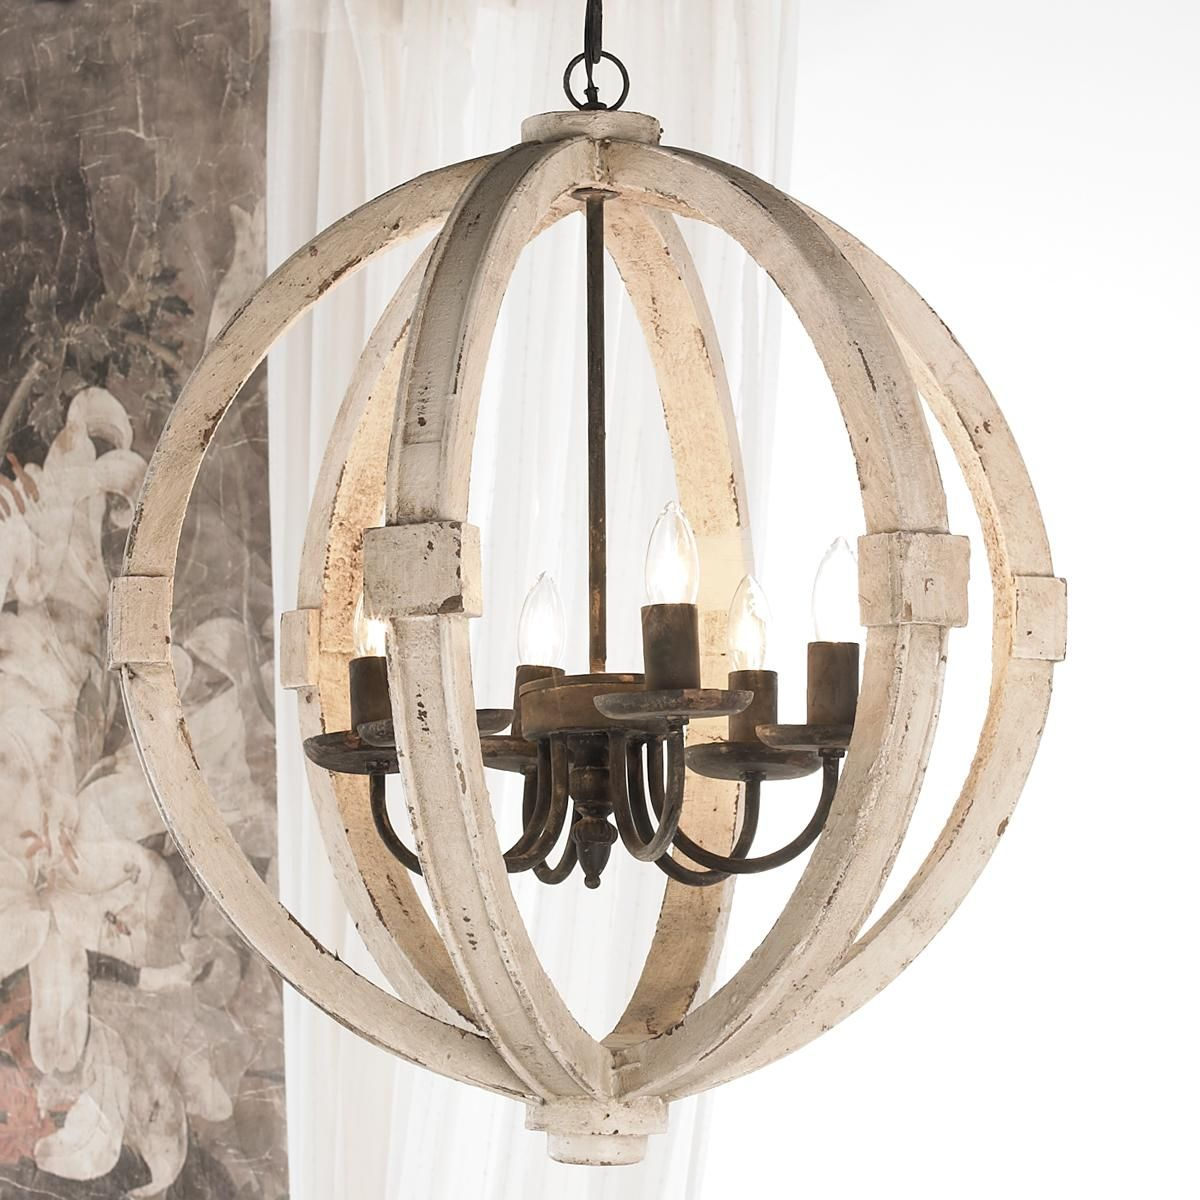 White washed wood sphere chandelier chandeliers by shades of light - Find This Pin And More On Lighting White Washed Wood Sphere